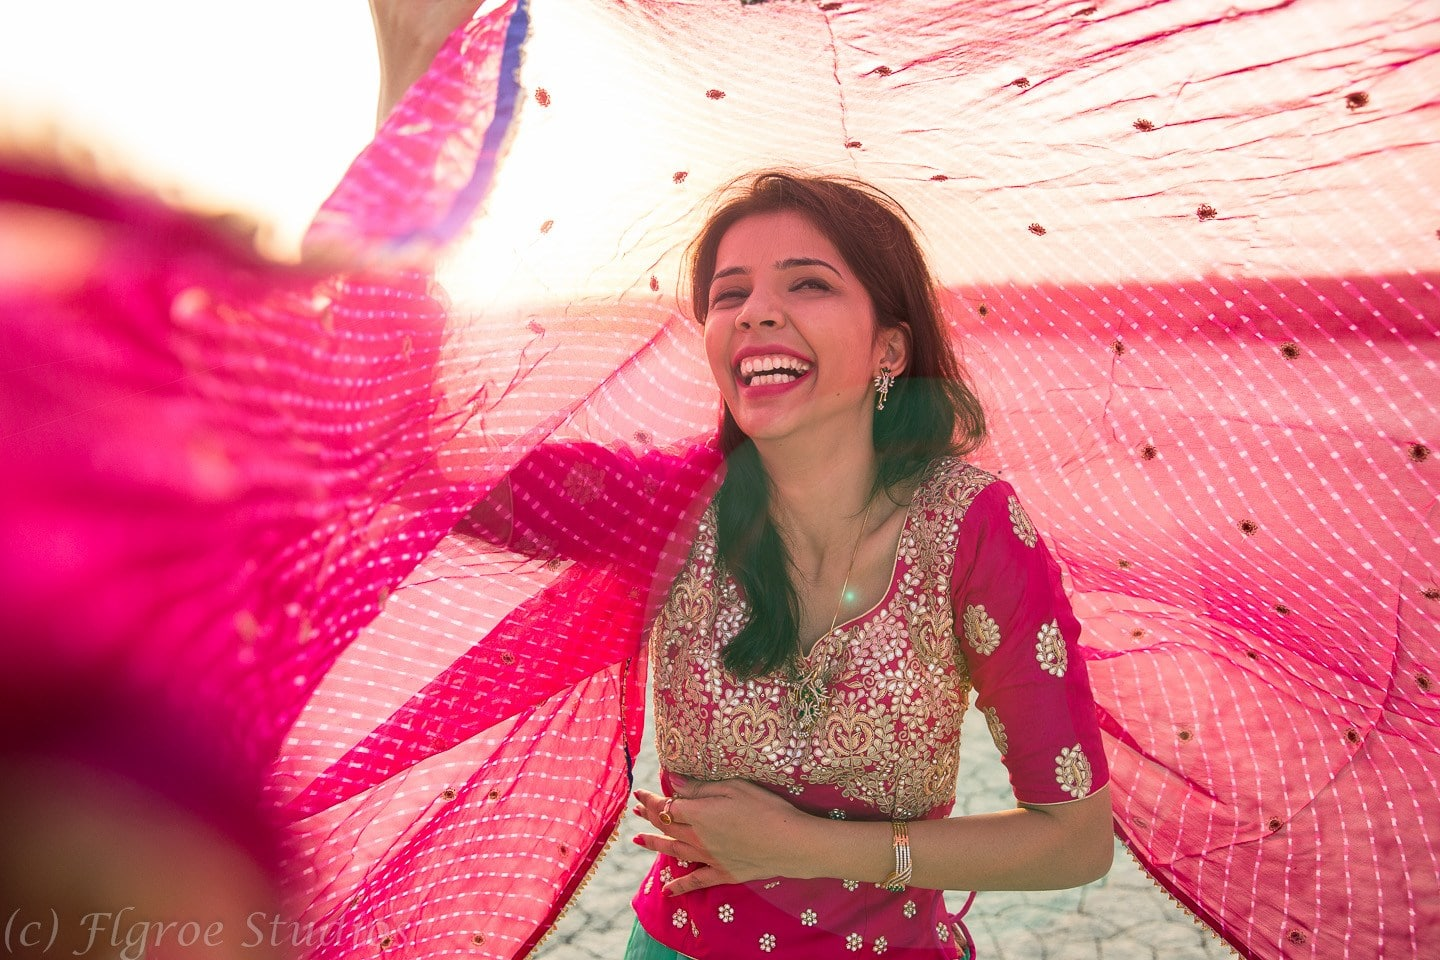 the bride neha!:flgroe studios